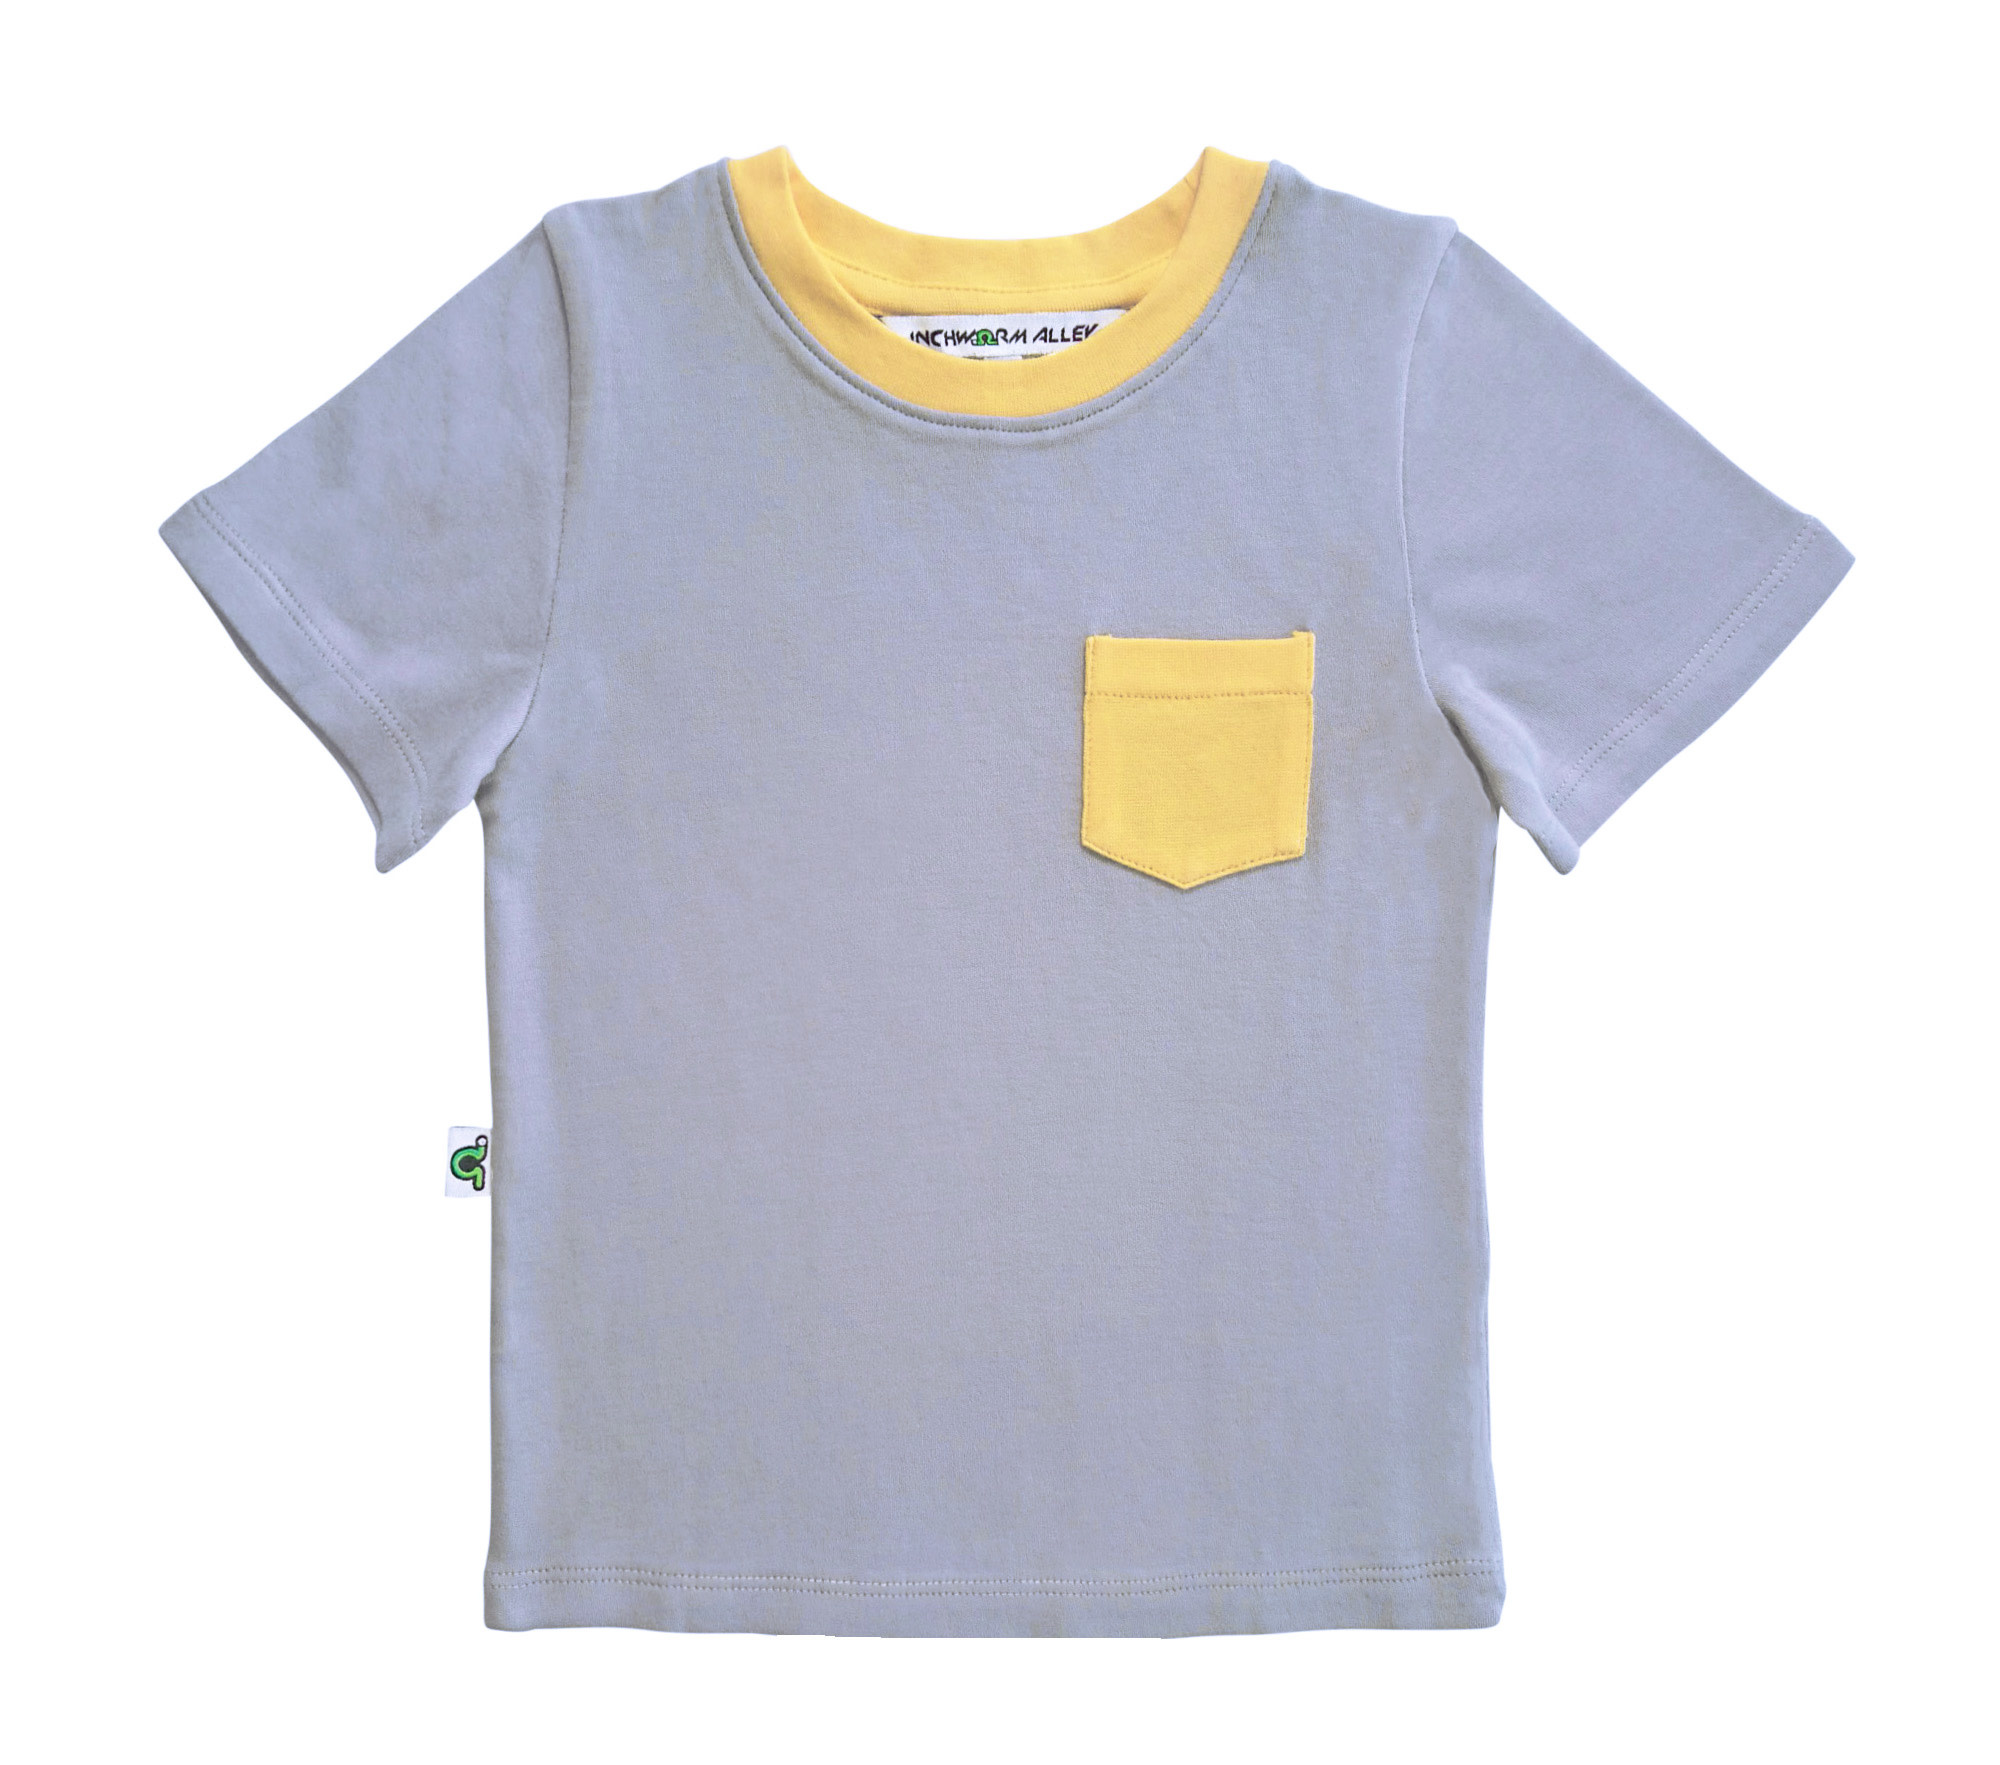 Inchworm Alley T-Shirt Gris Poche Jaune